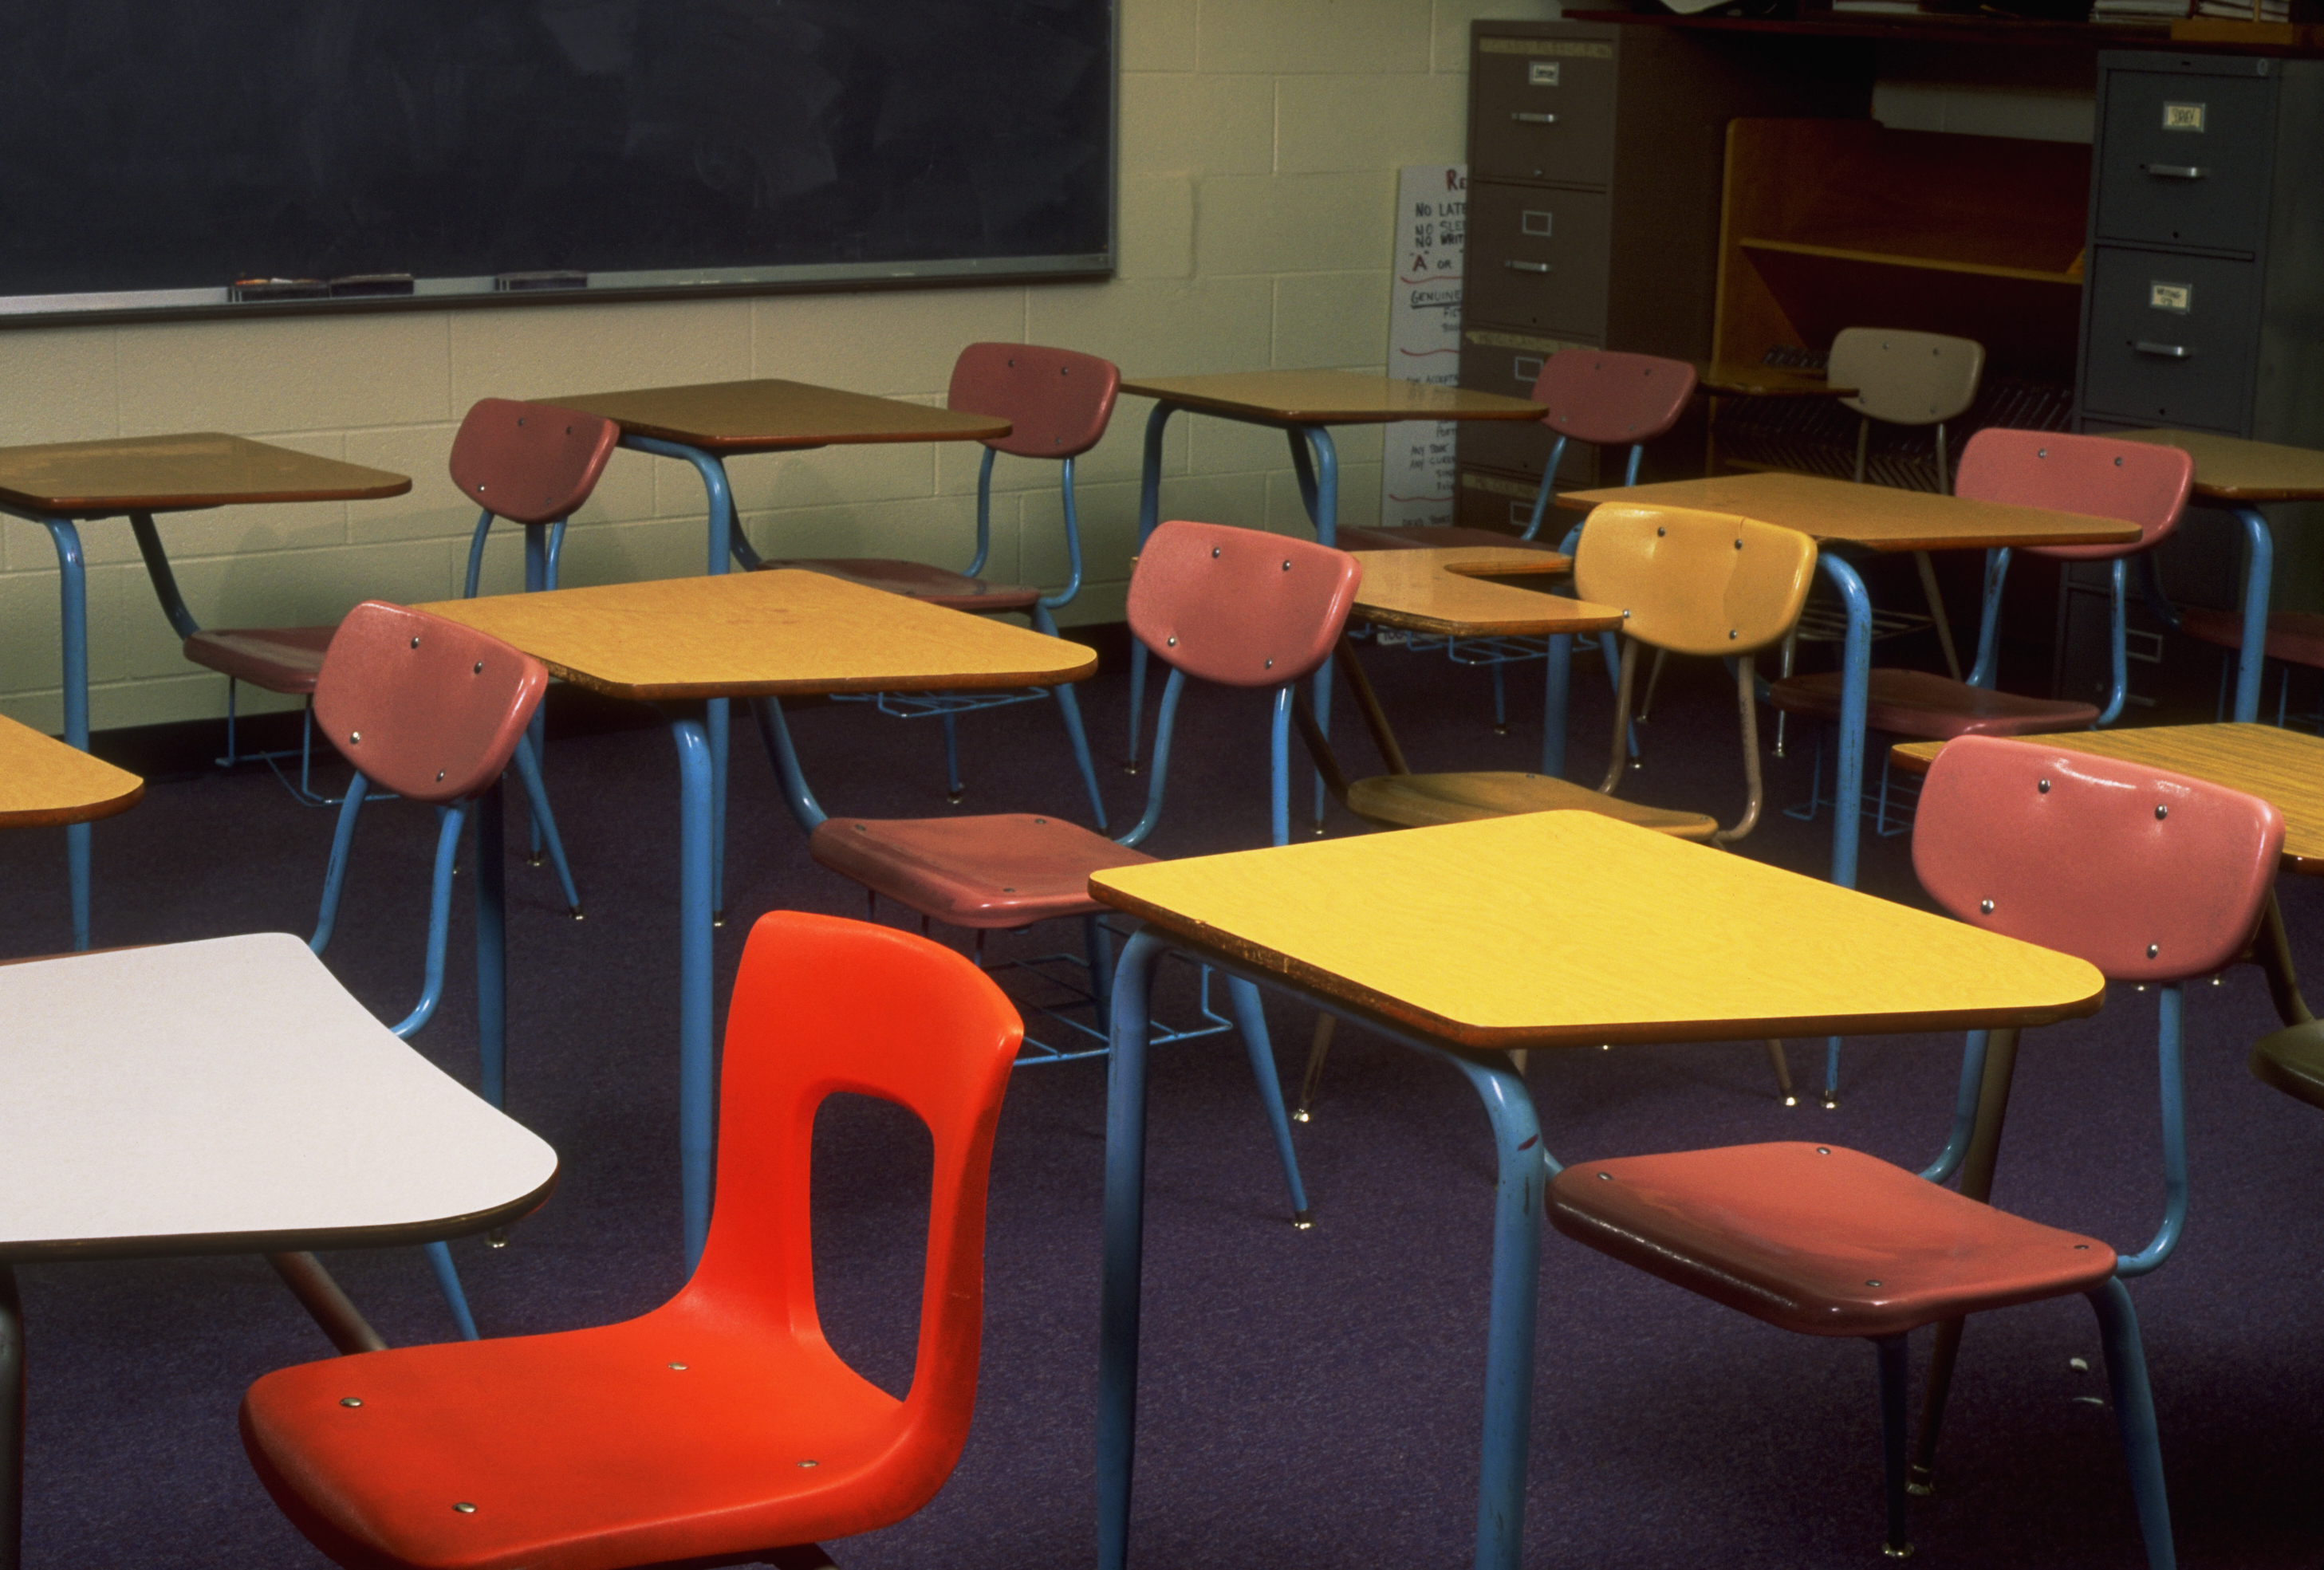 Colorful empty school desks and chairs in a classroom.